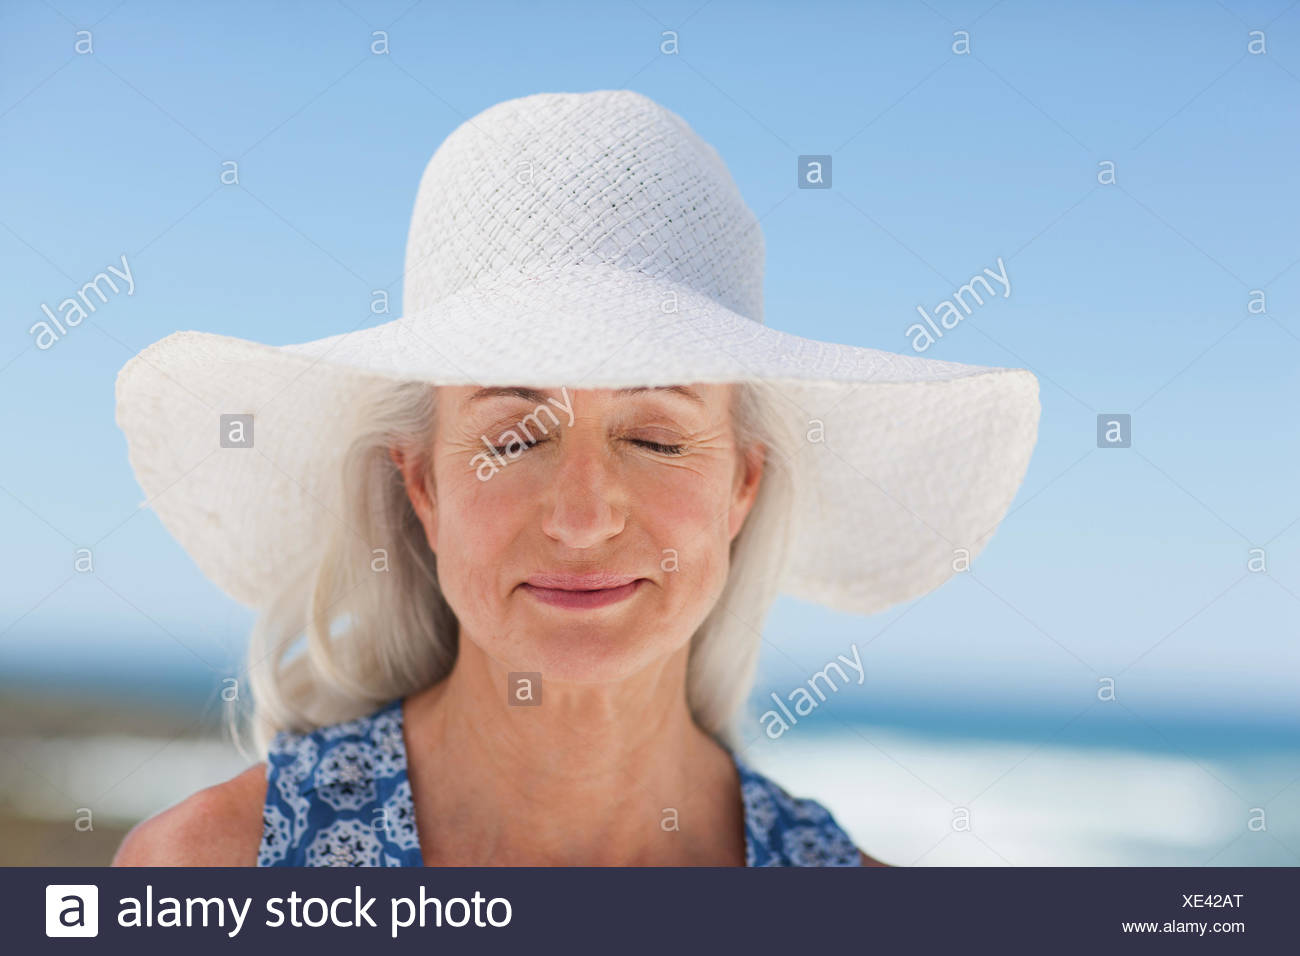 Close up of woman closing eyes with wearing sun hat - Stock Image